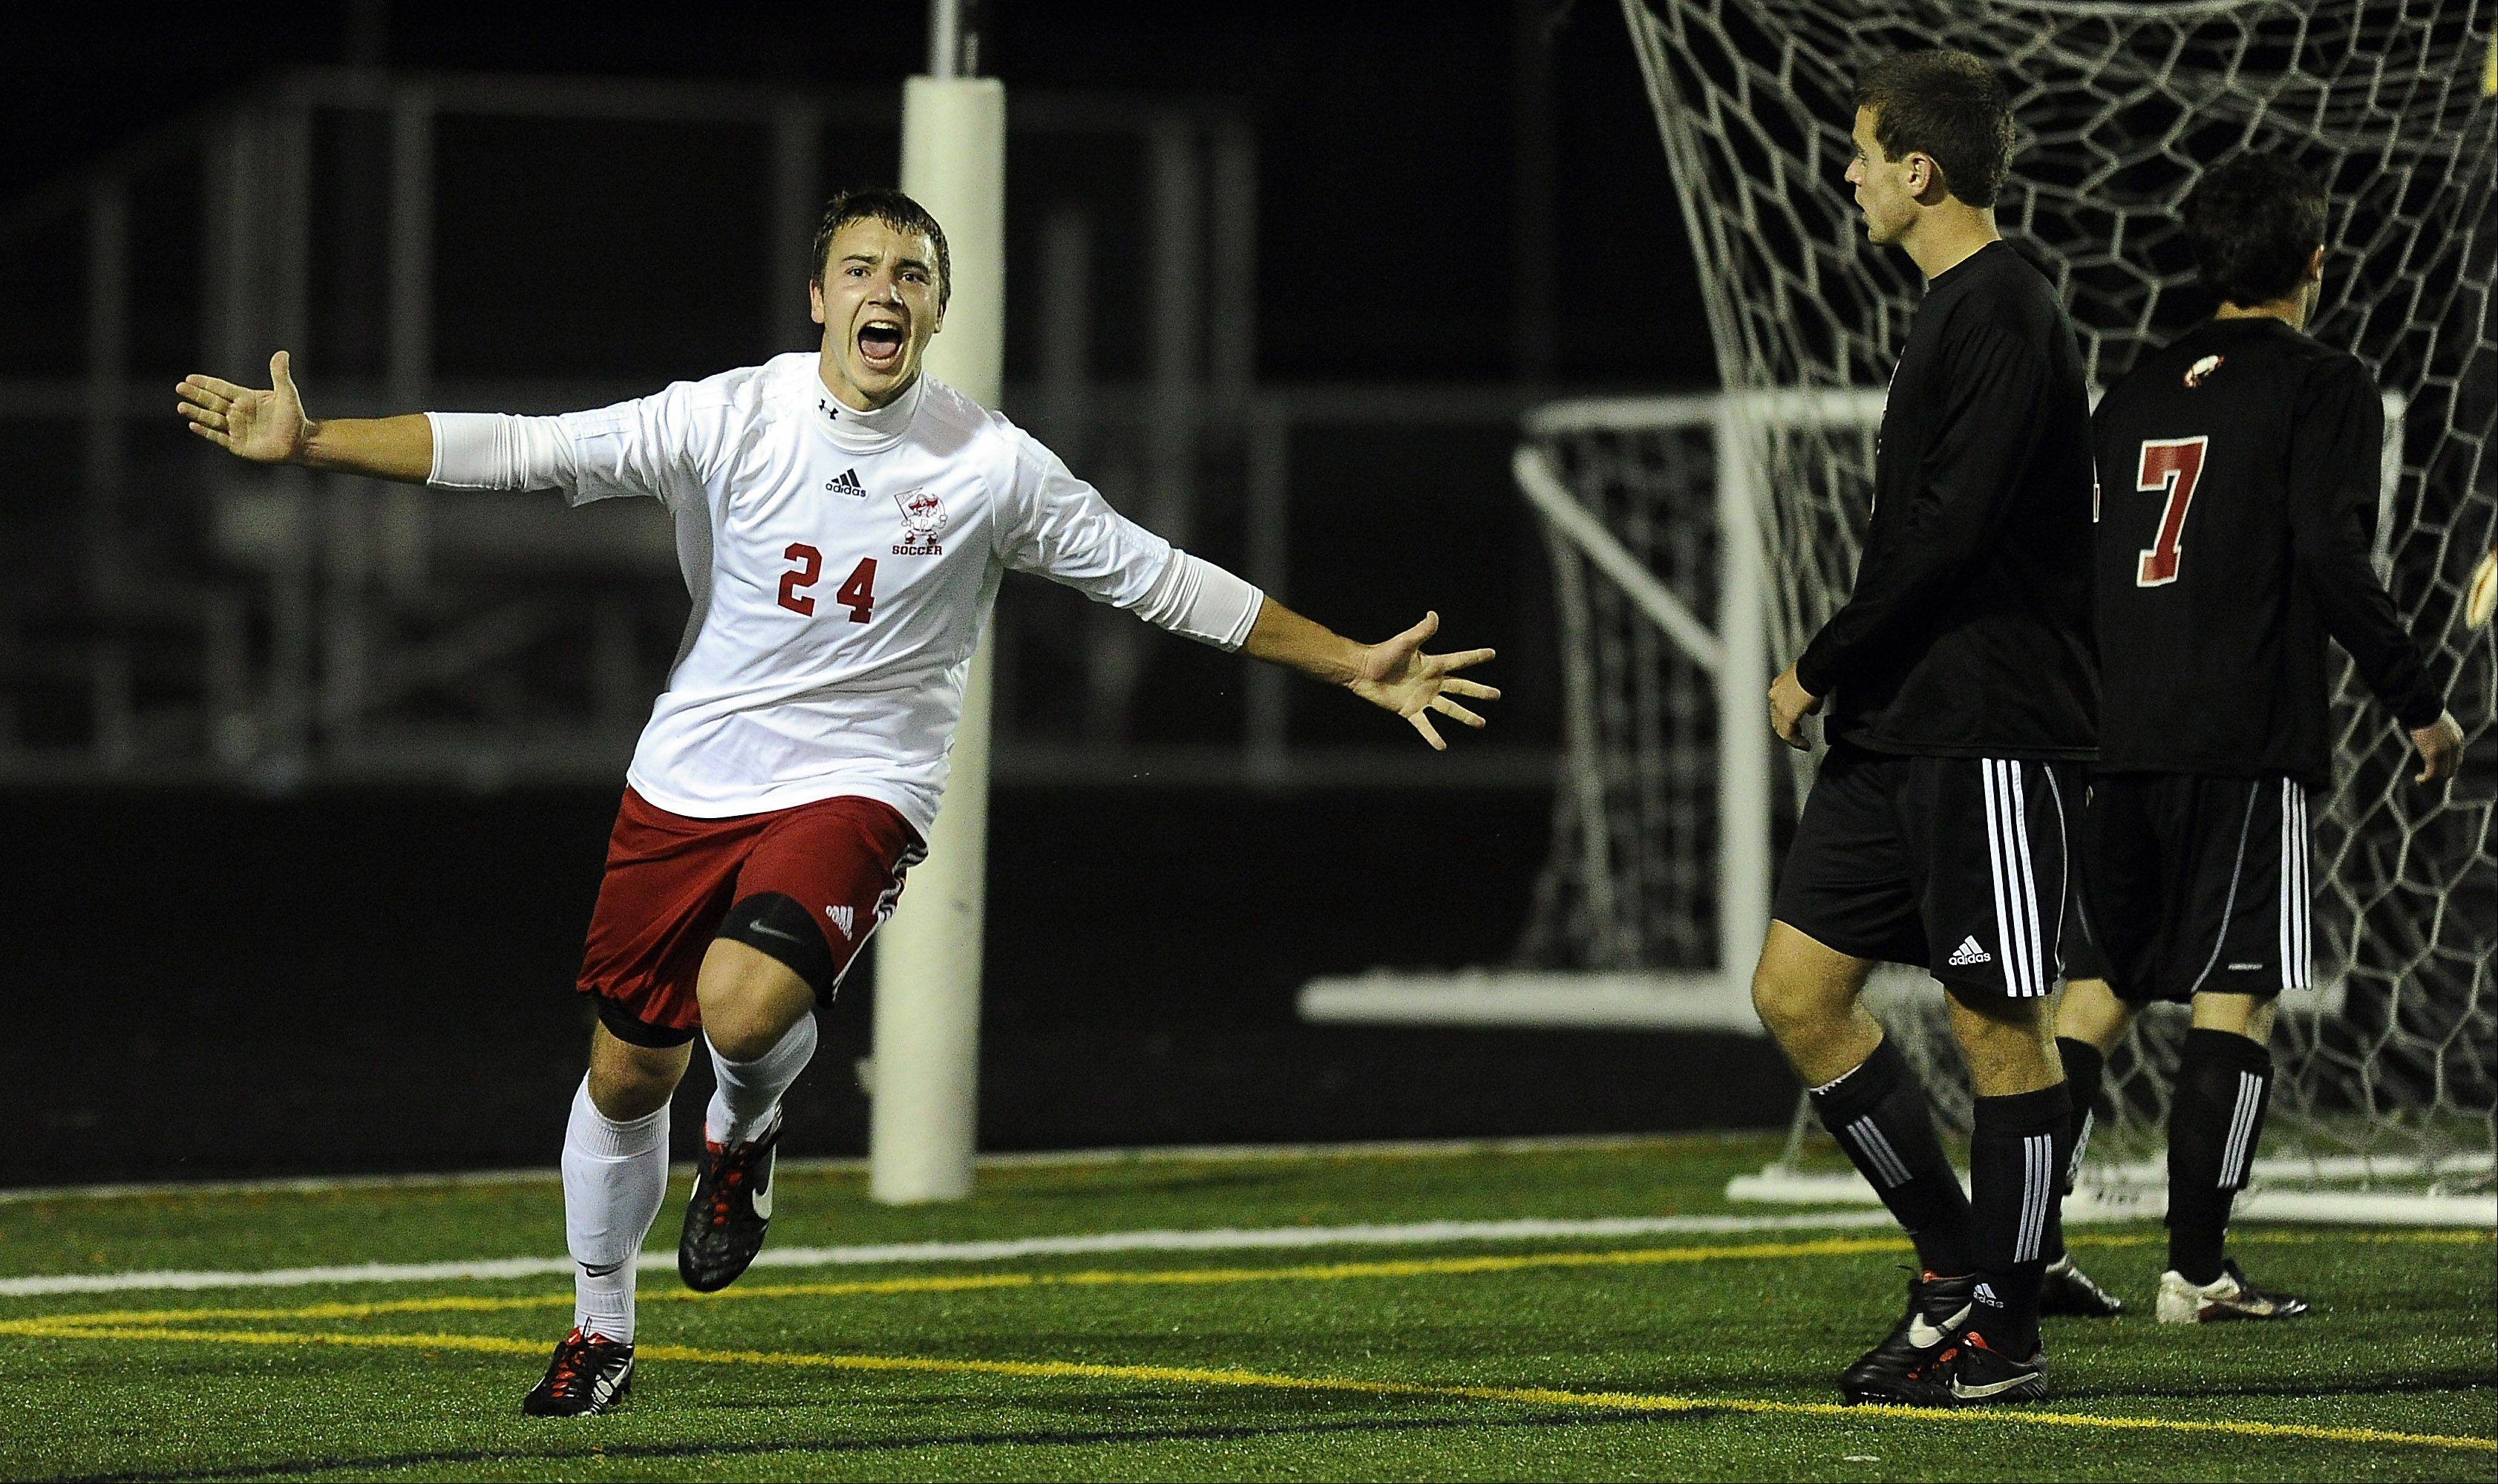 Barrington's Danny Jaderholm watches as Palatine's Jeremy Velinski celebrates his goal during the MSL West soccer tournament at Palatine High School on Thursday.